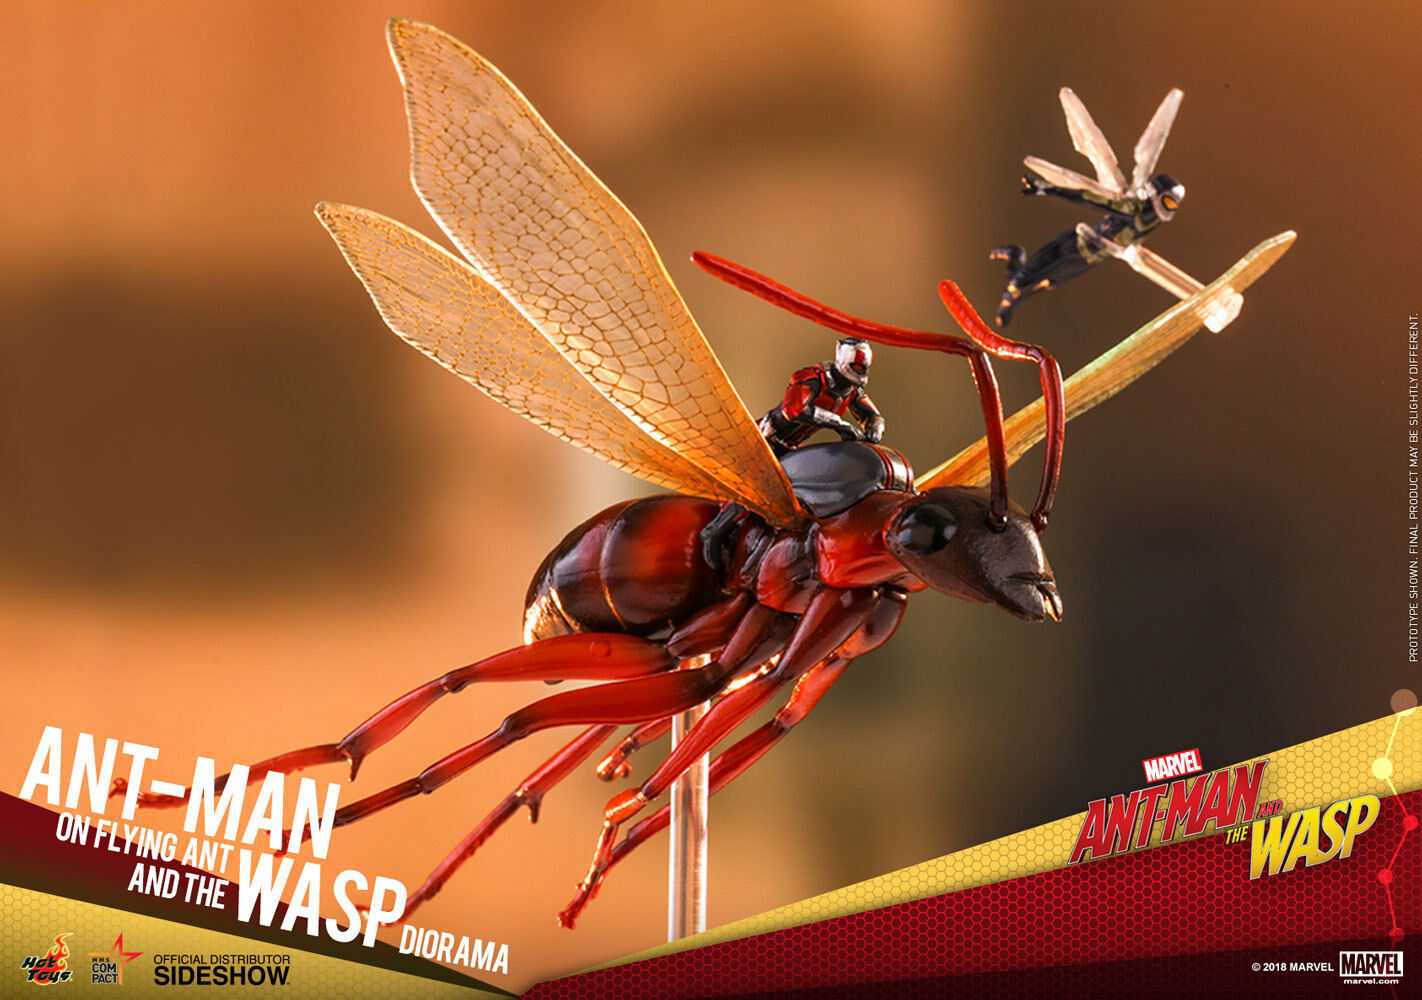 Ant-Man on Flying Ant & the Wasp MMS Diorama Acción Figuras Hot Juguetes Sideshow